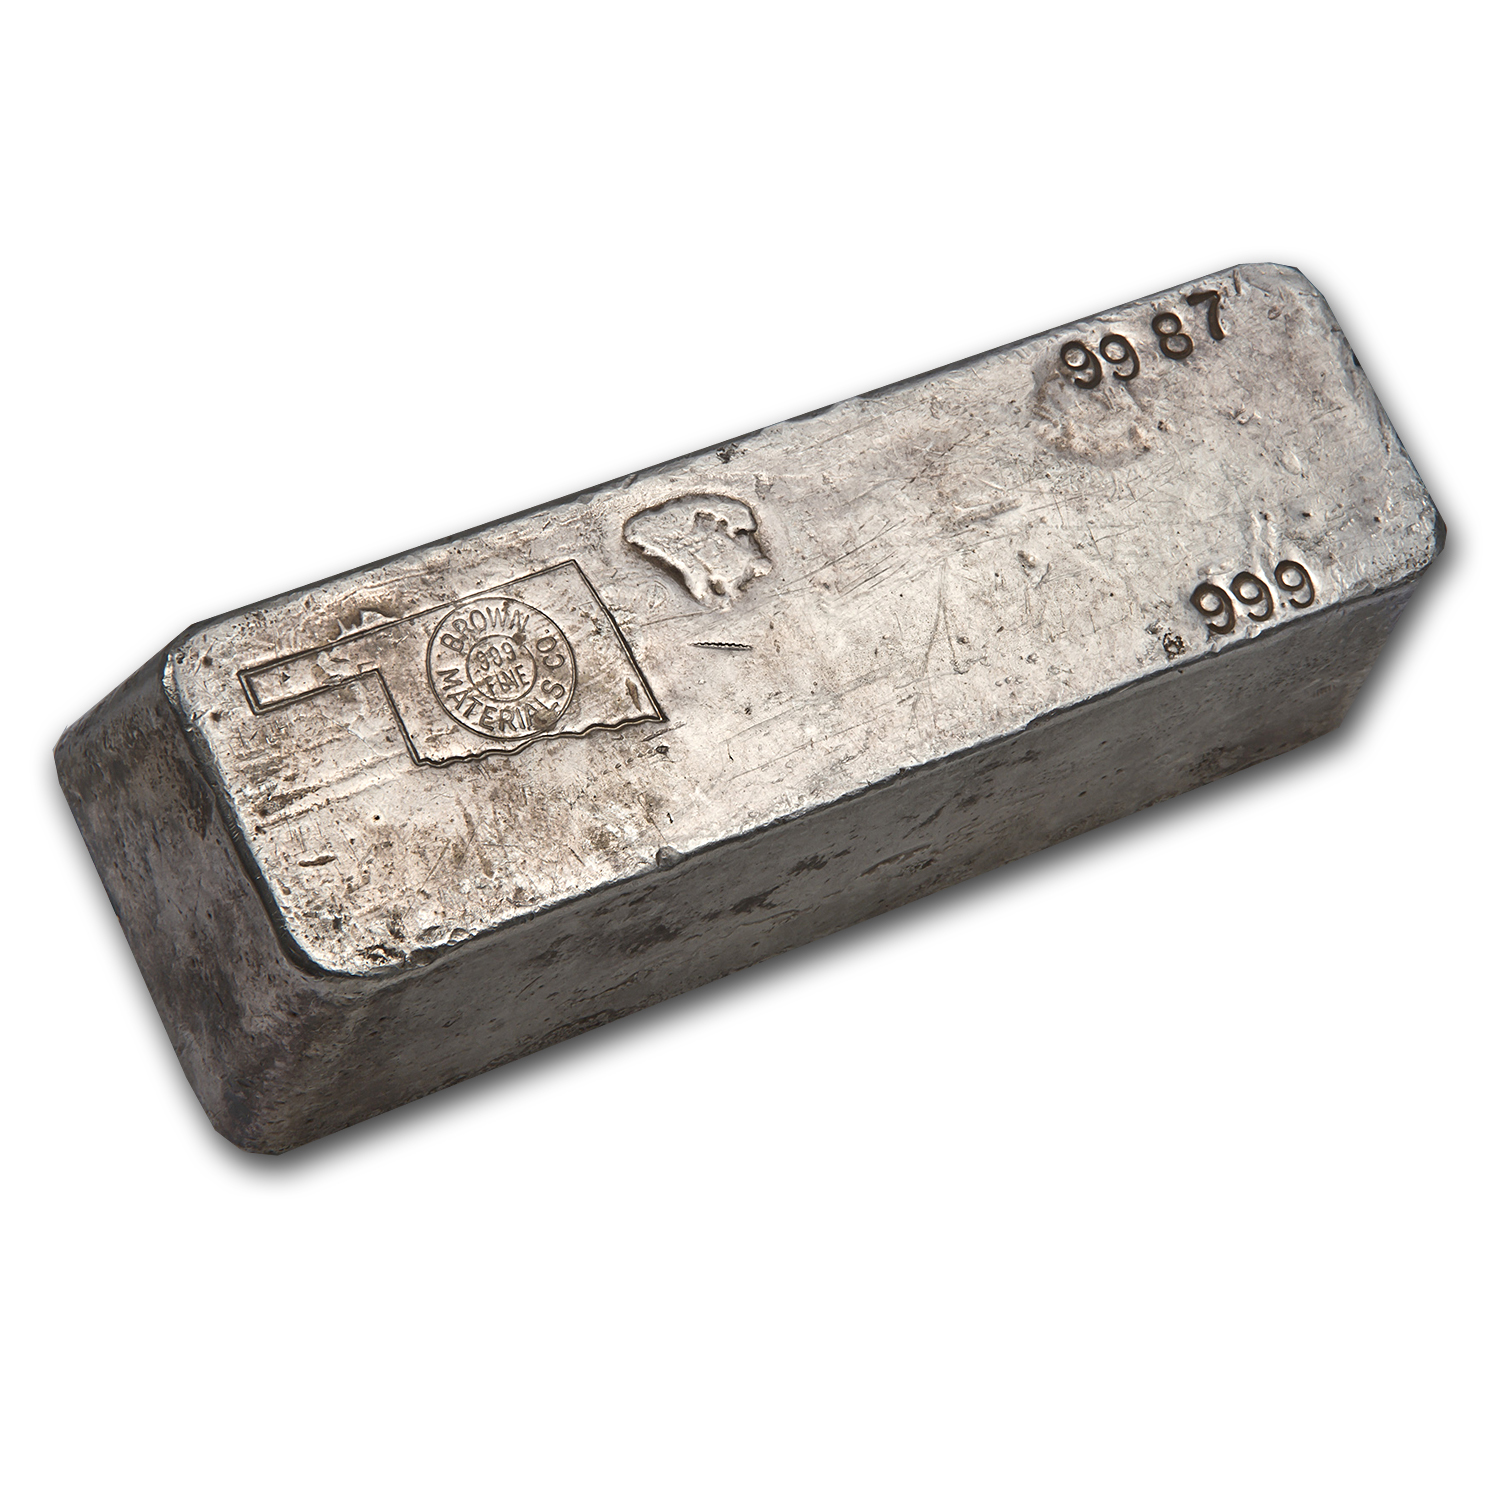 99.87 oz Silver Bars - Brown Materials